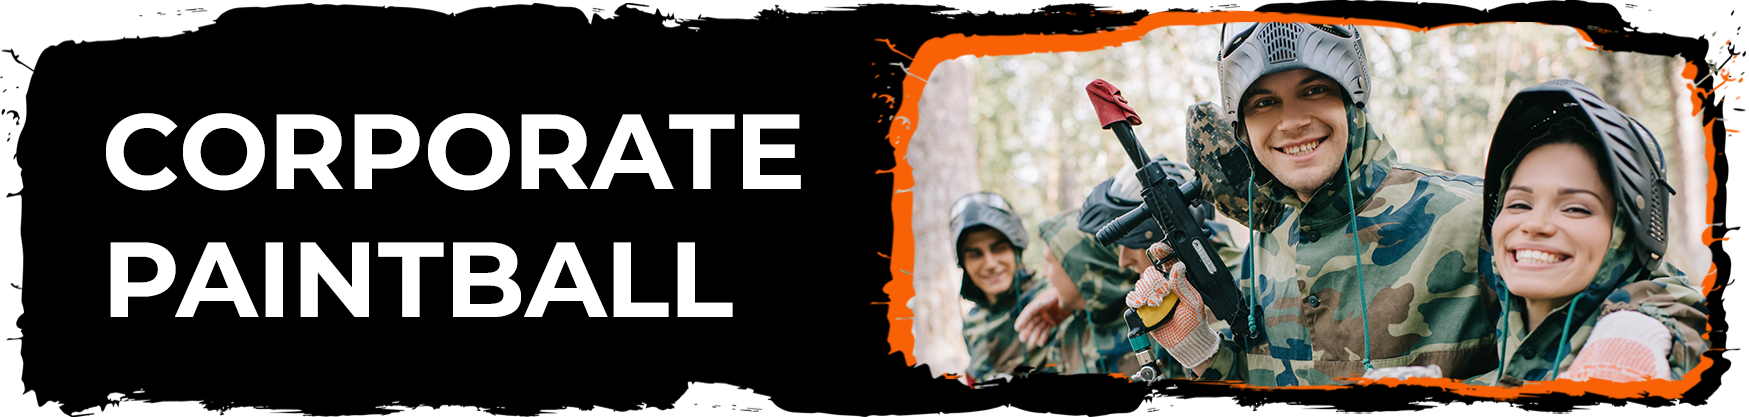 Mobile Corporate Paintball